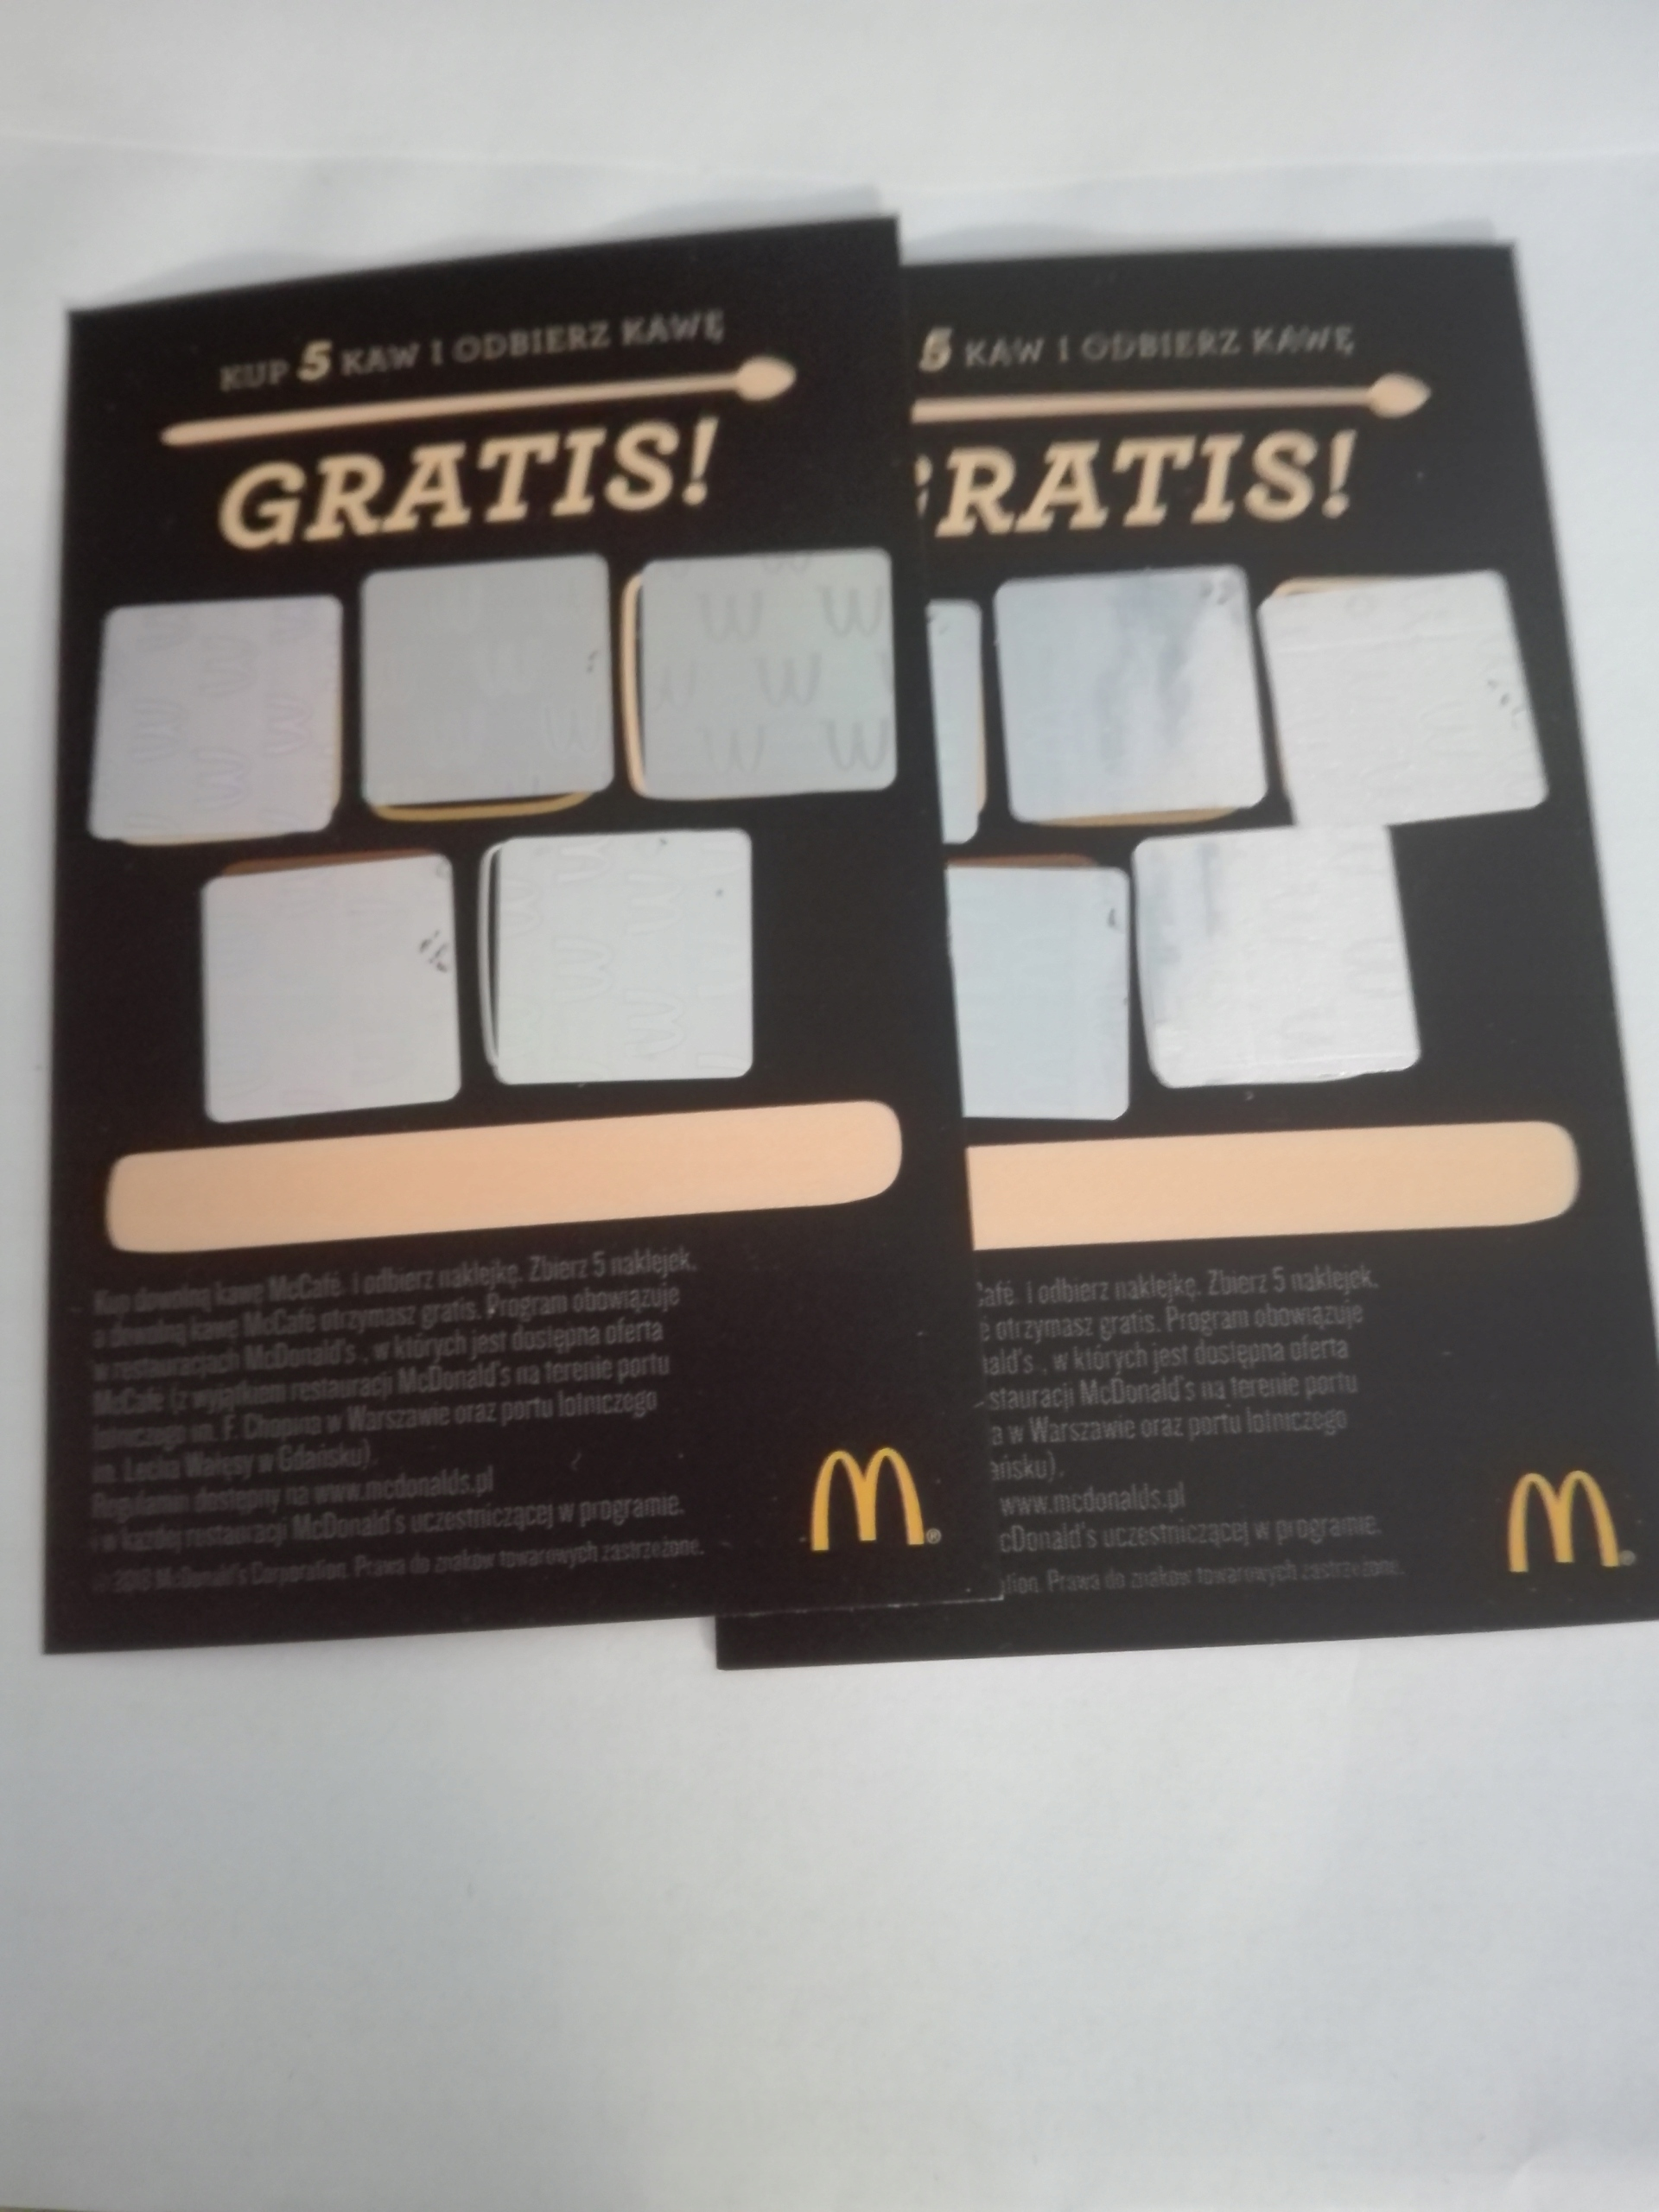 Item Coupons for coffee at McDonald's 10 +1 free